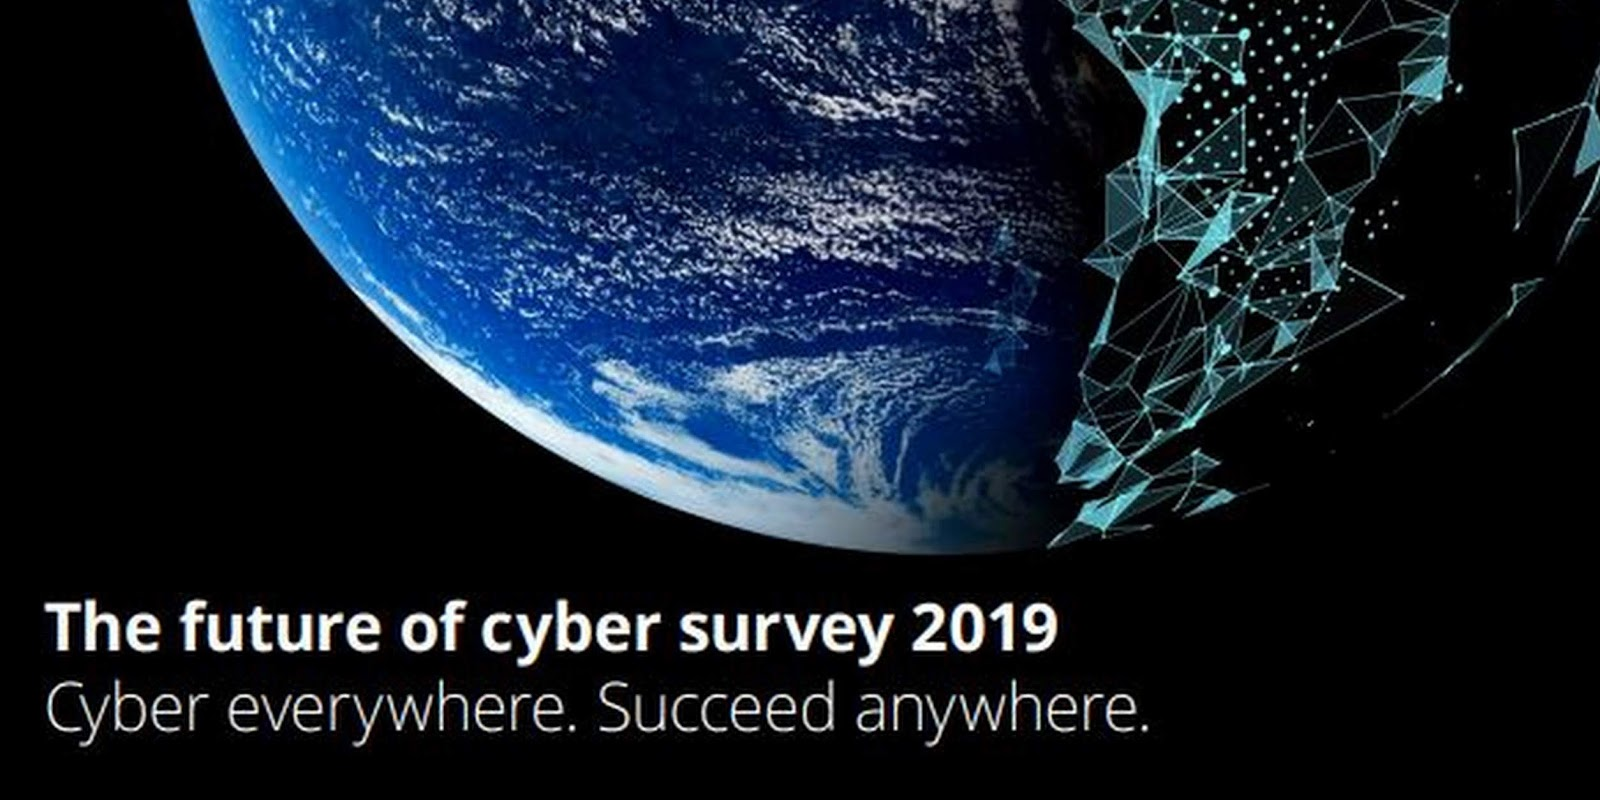 Deloitte 2019 Future of Cyber Survey Indicates Organizations Are Not Ready